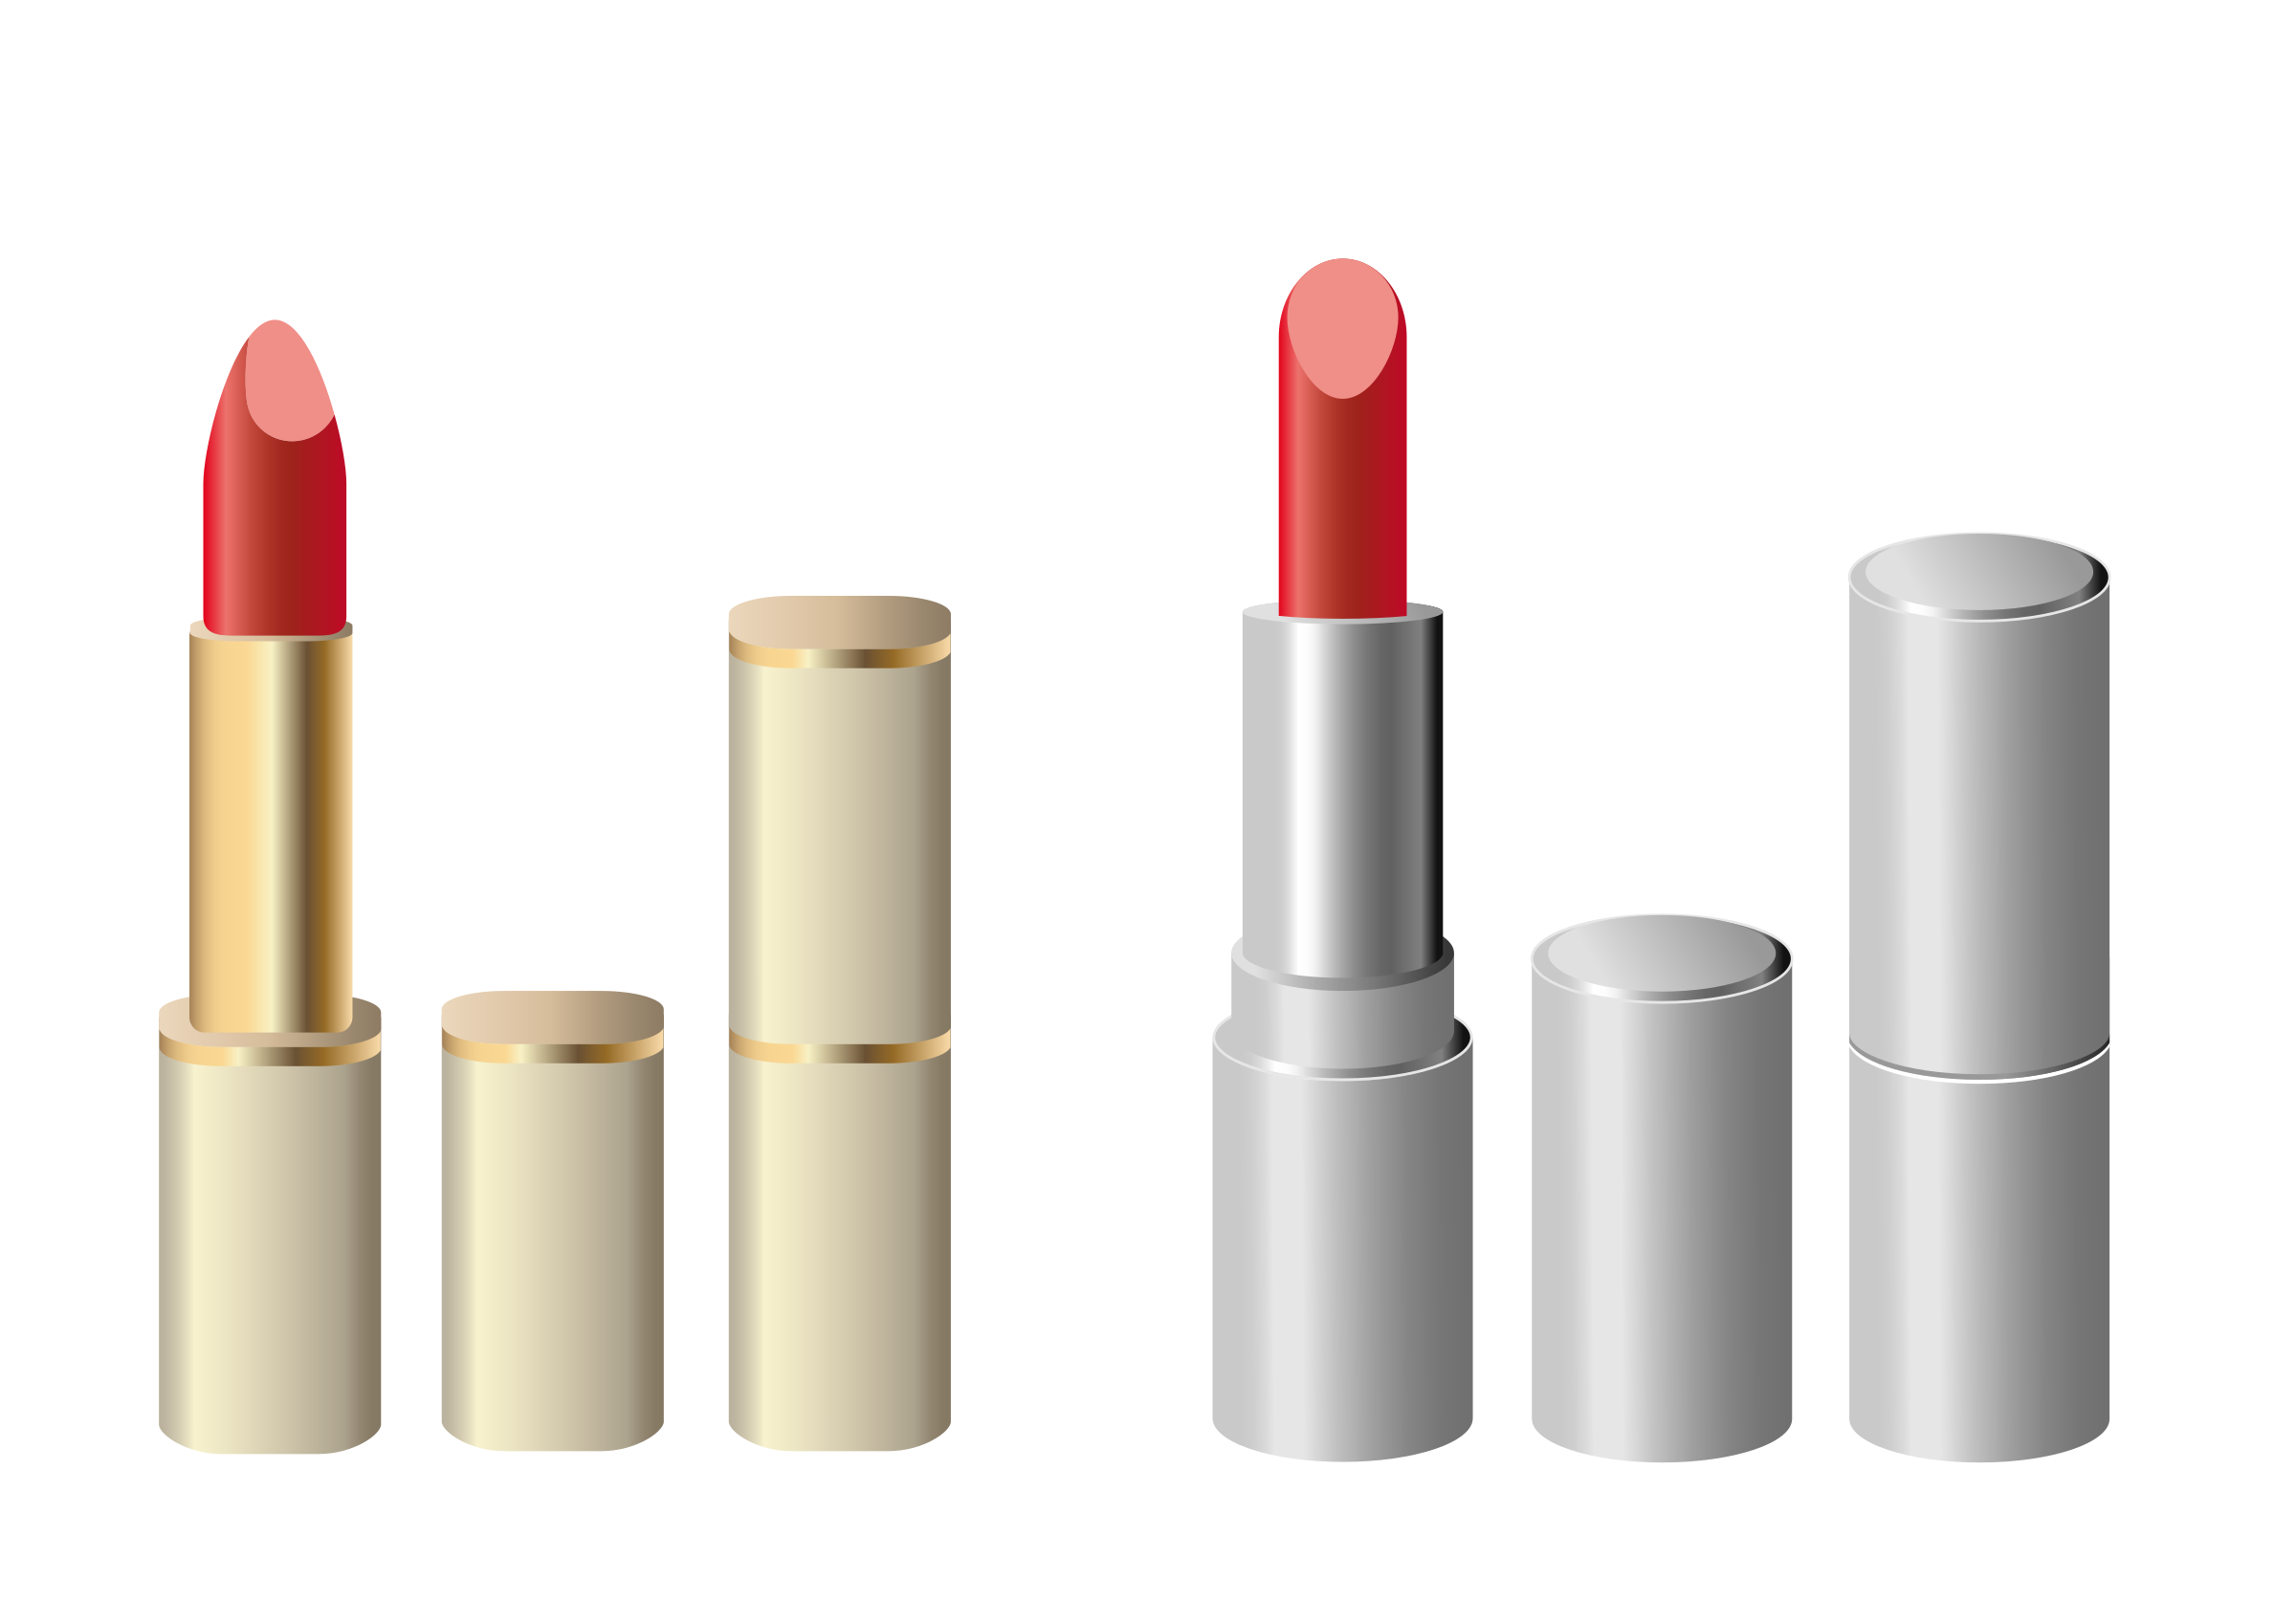 Png images free download. Outline clipart lipstick